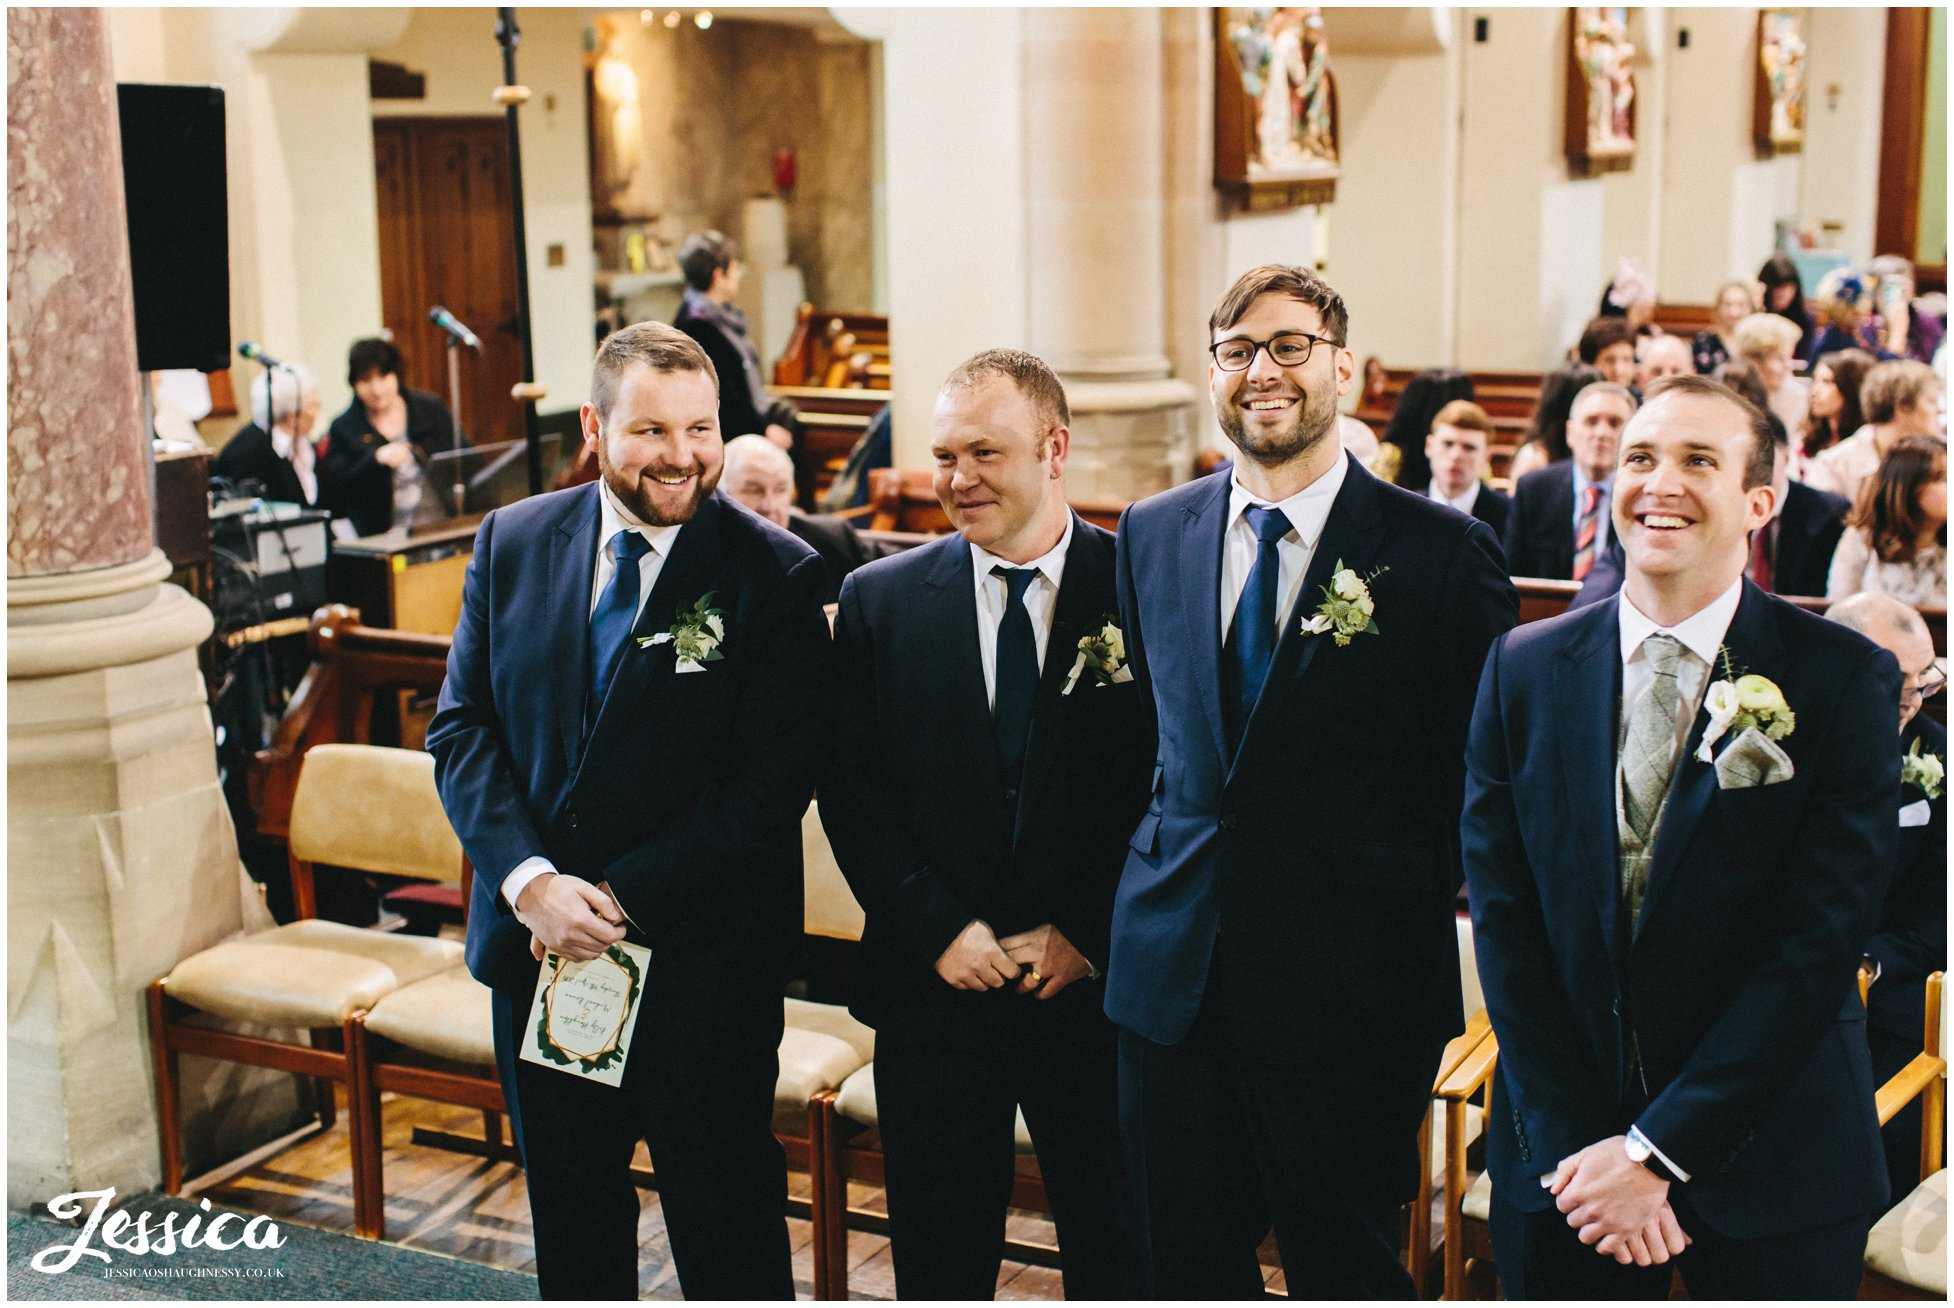 the groom & groomsmen laugh at the front of the church